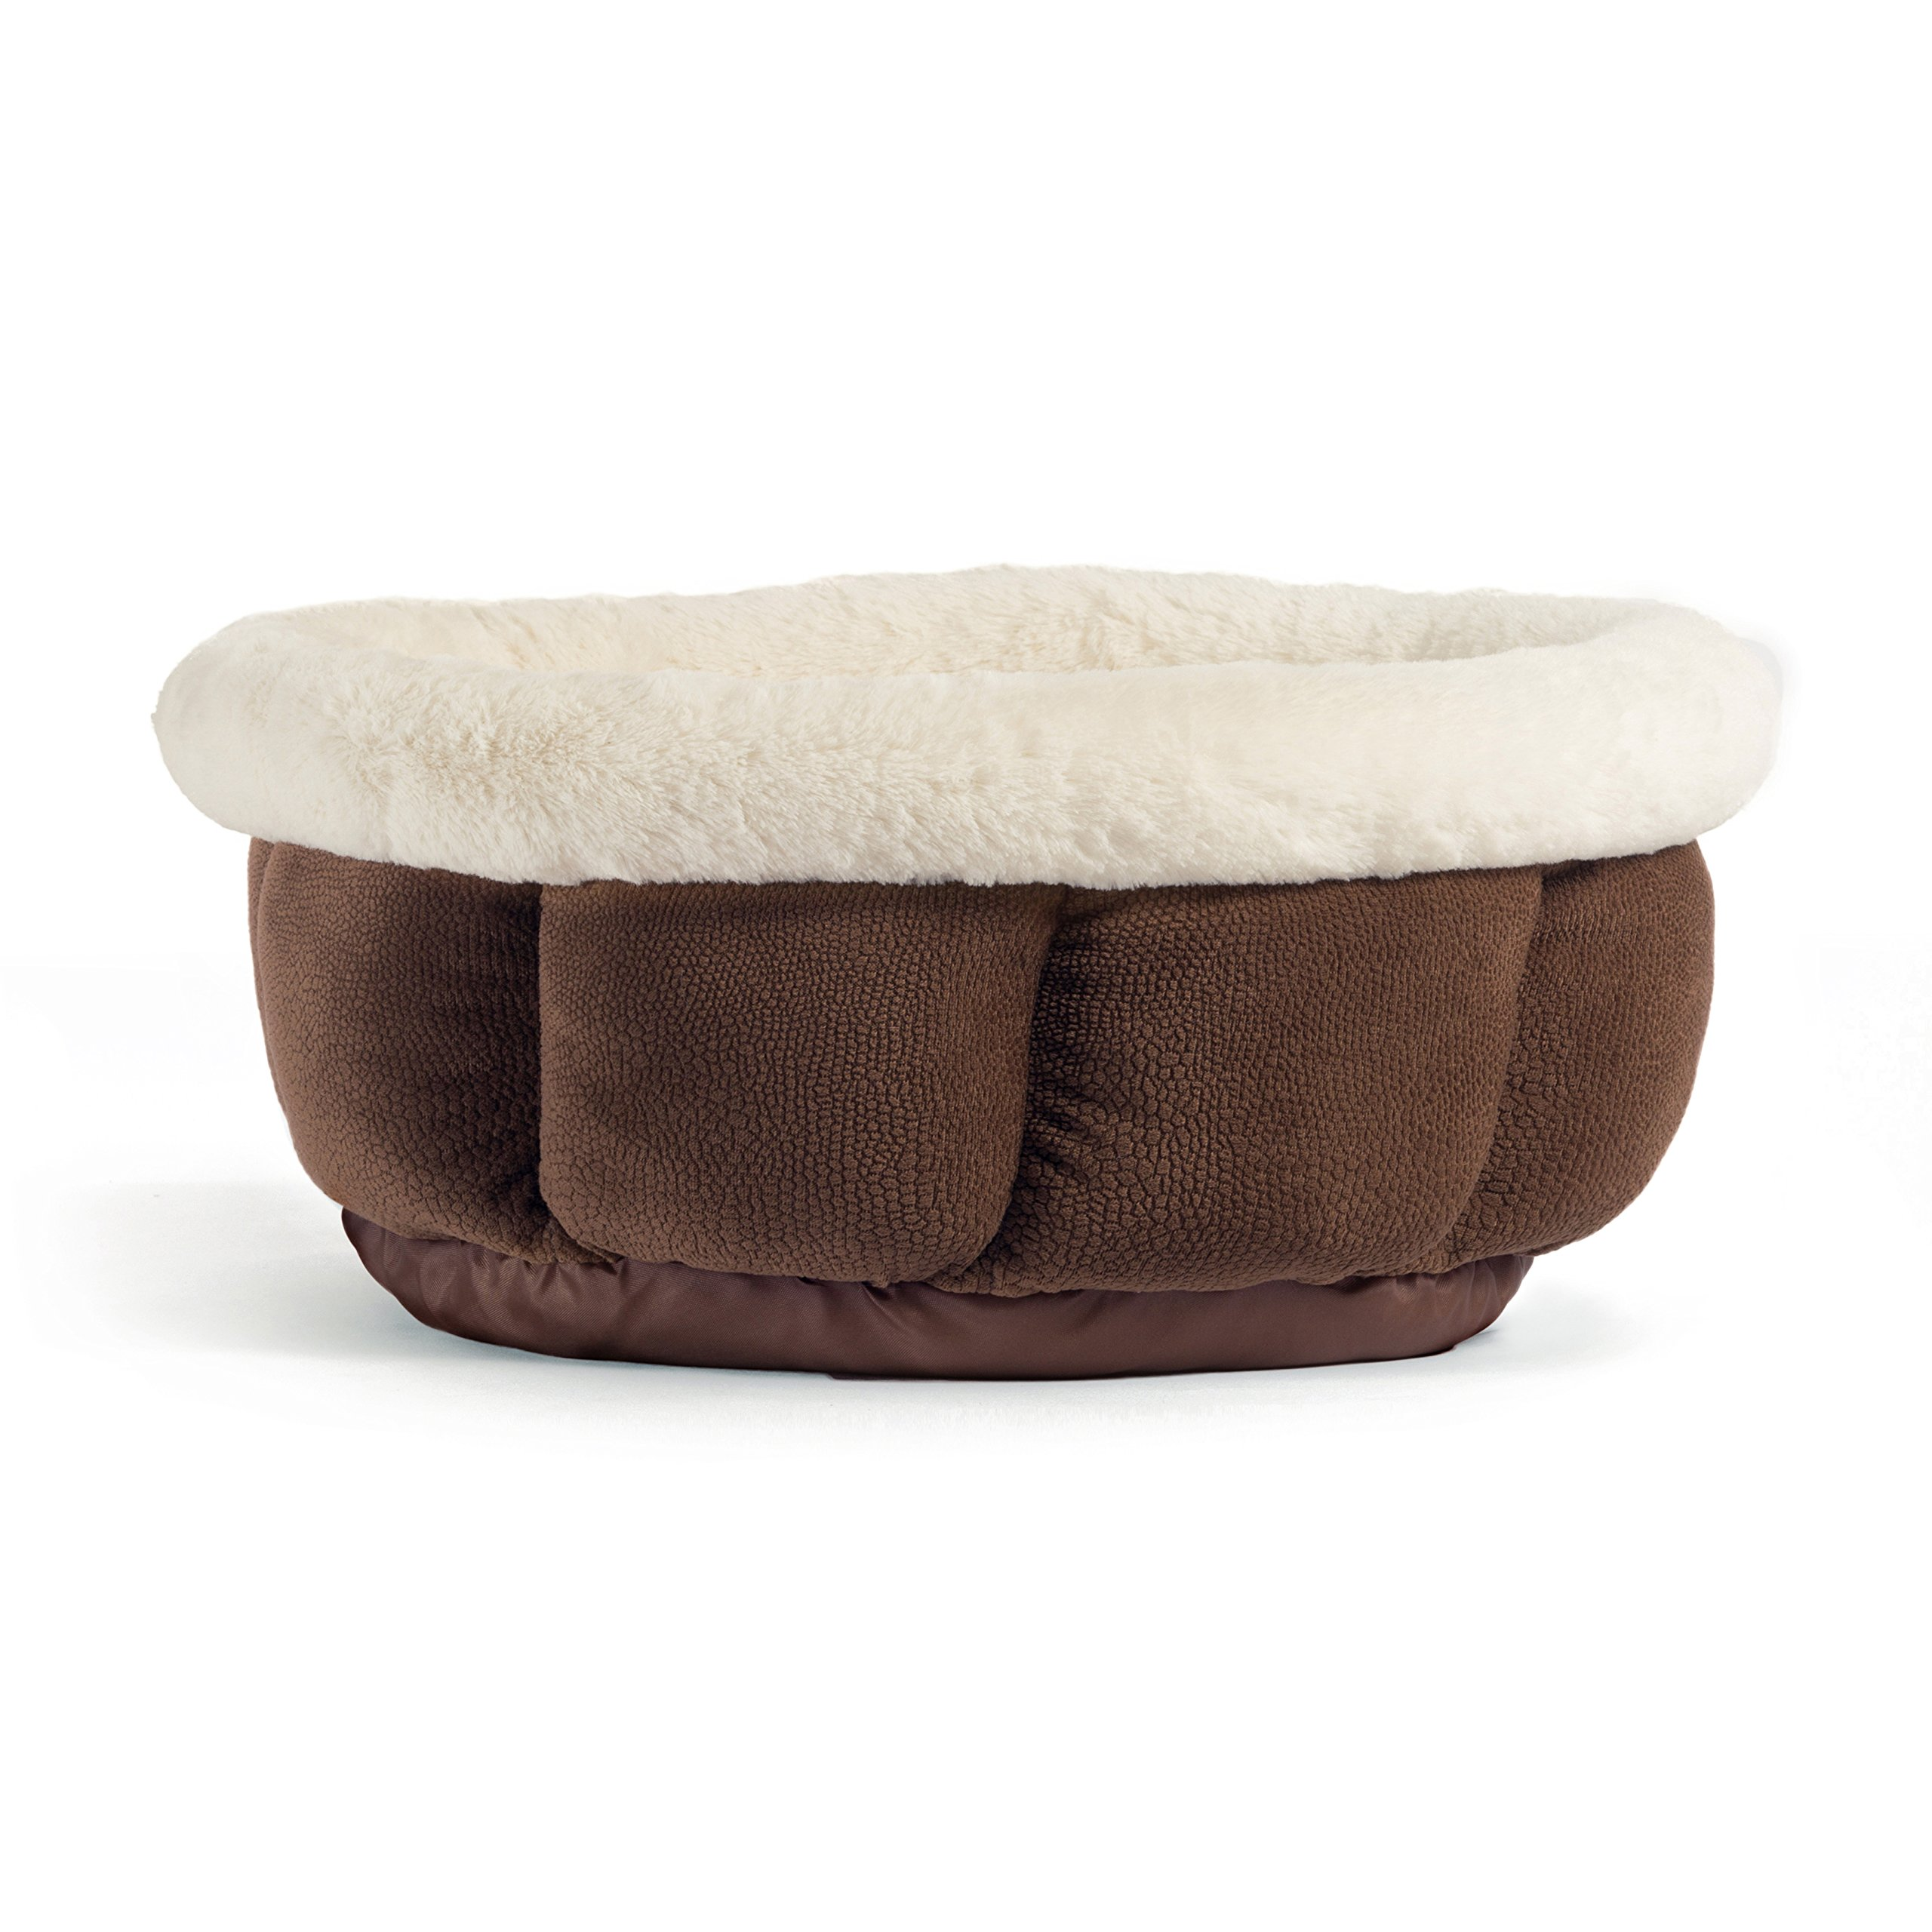 Best Friends by Sheri Small Cuddle Cup - Cozy, Comfortable Cat and Dog House Bed - High-Walls for Improved Sleep, Dark Chocolate by Best Friends by Sheri (Image #2)